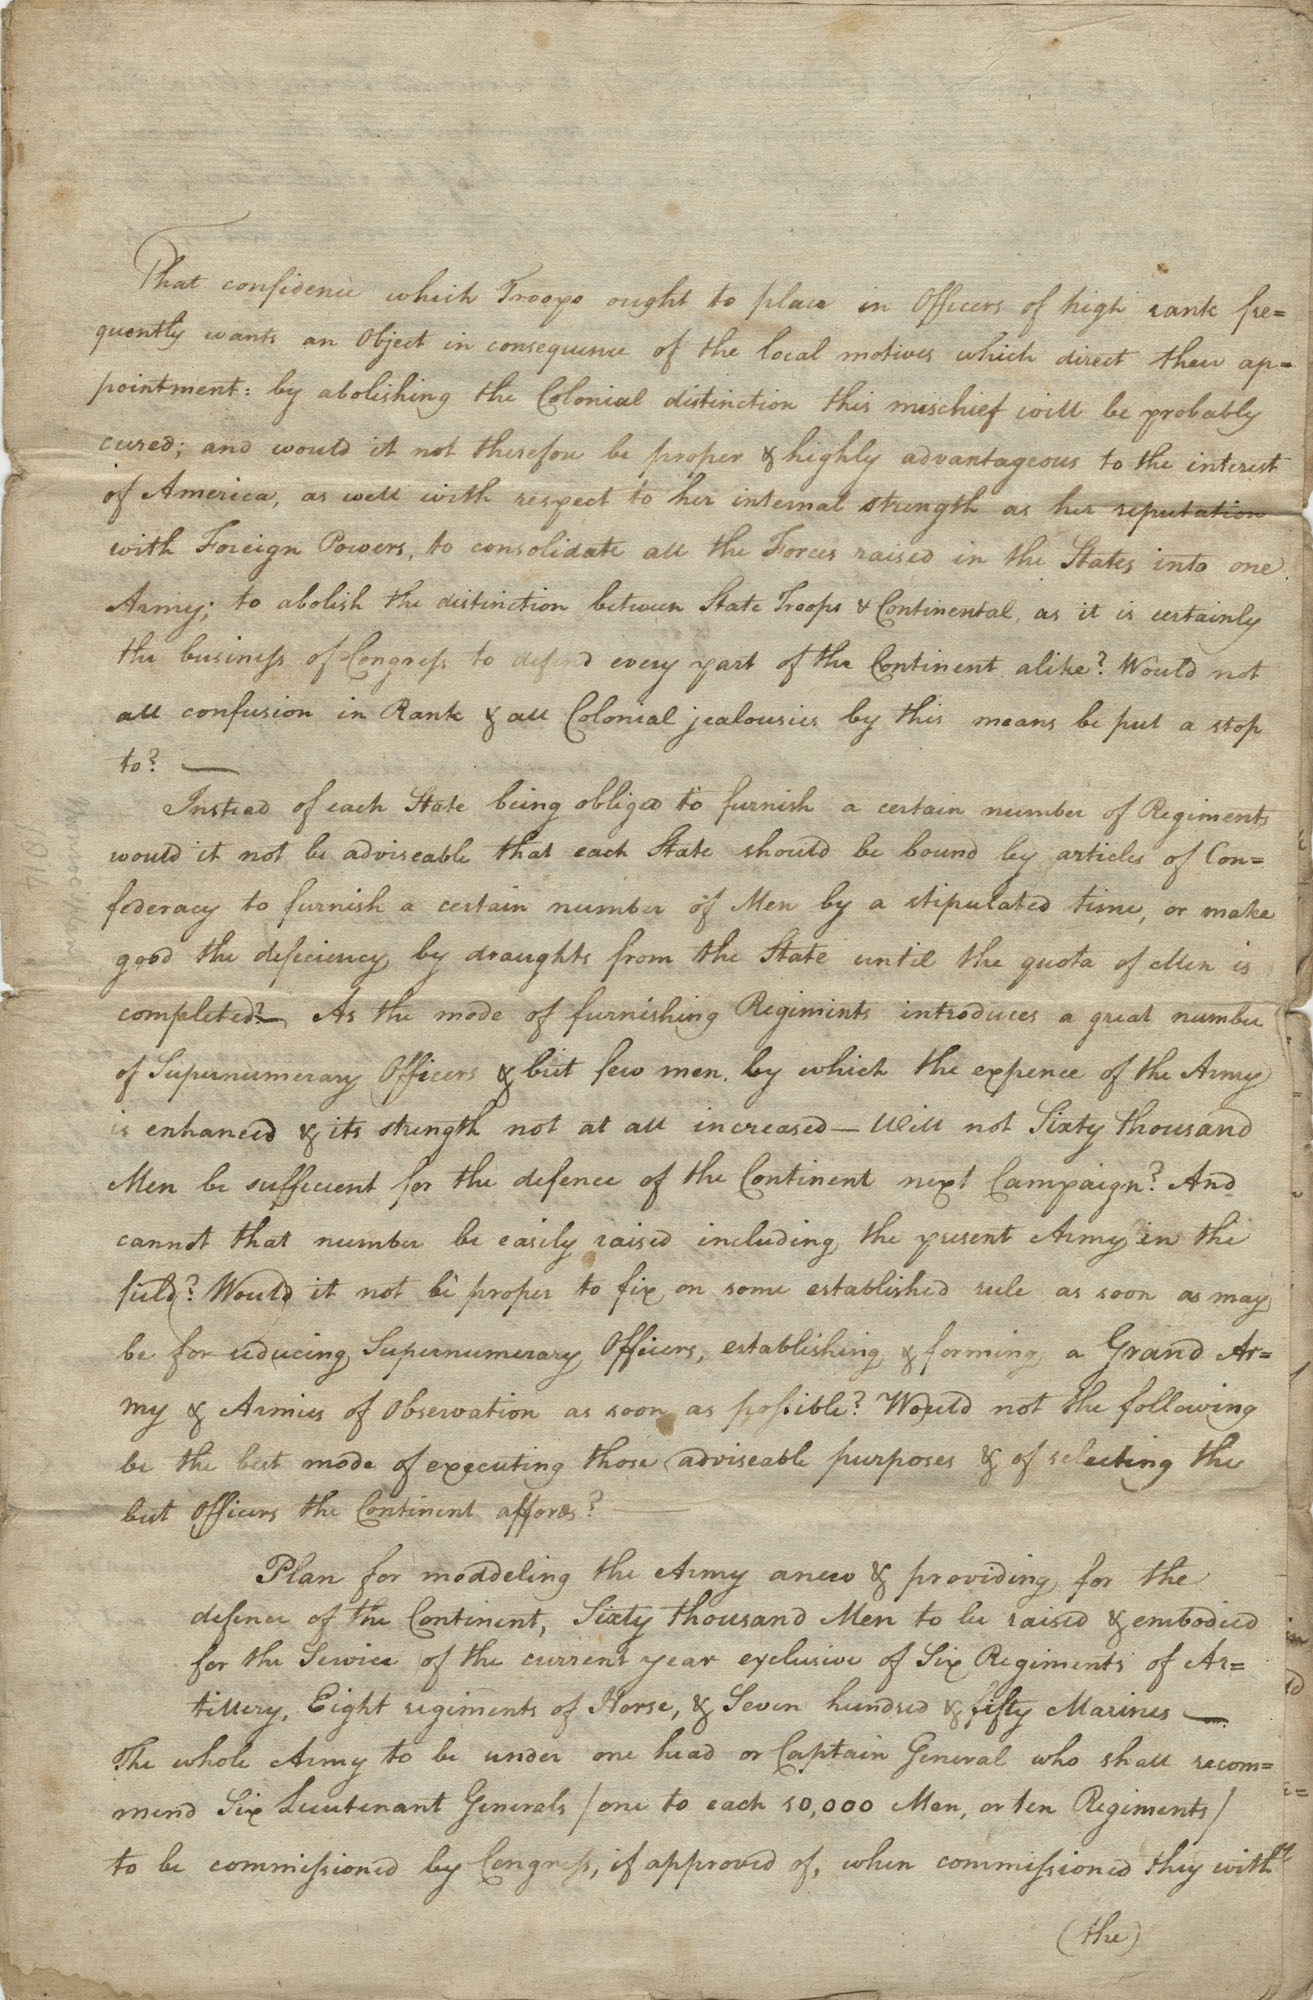 Letter from Colonel Roberts to General George Washington, Included copy of Washington's initial correspondence